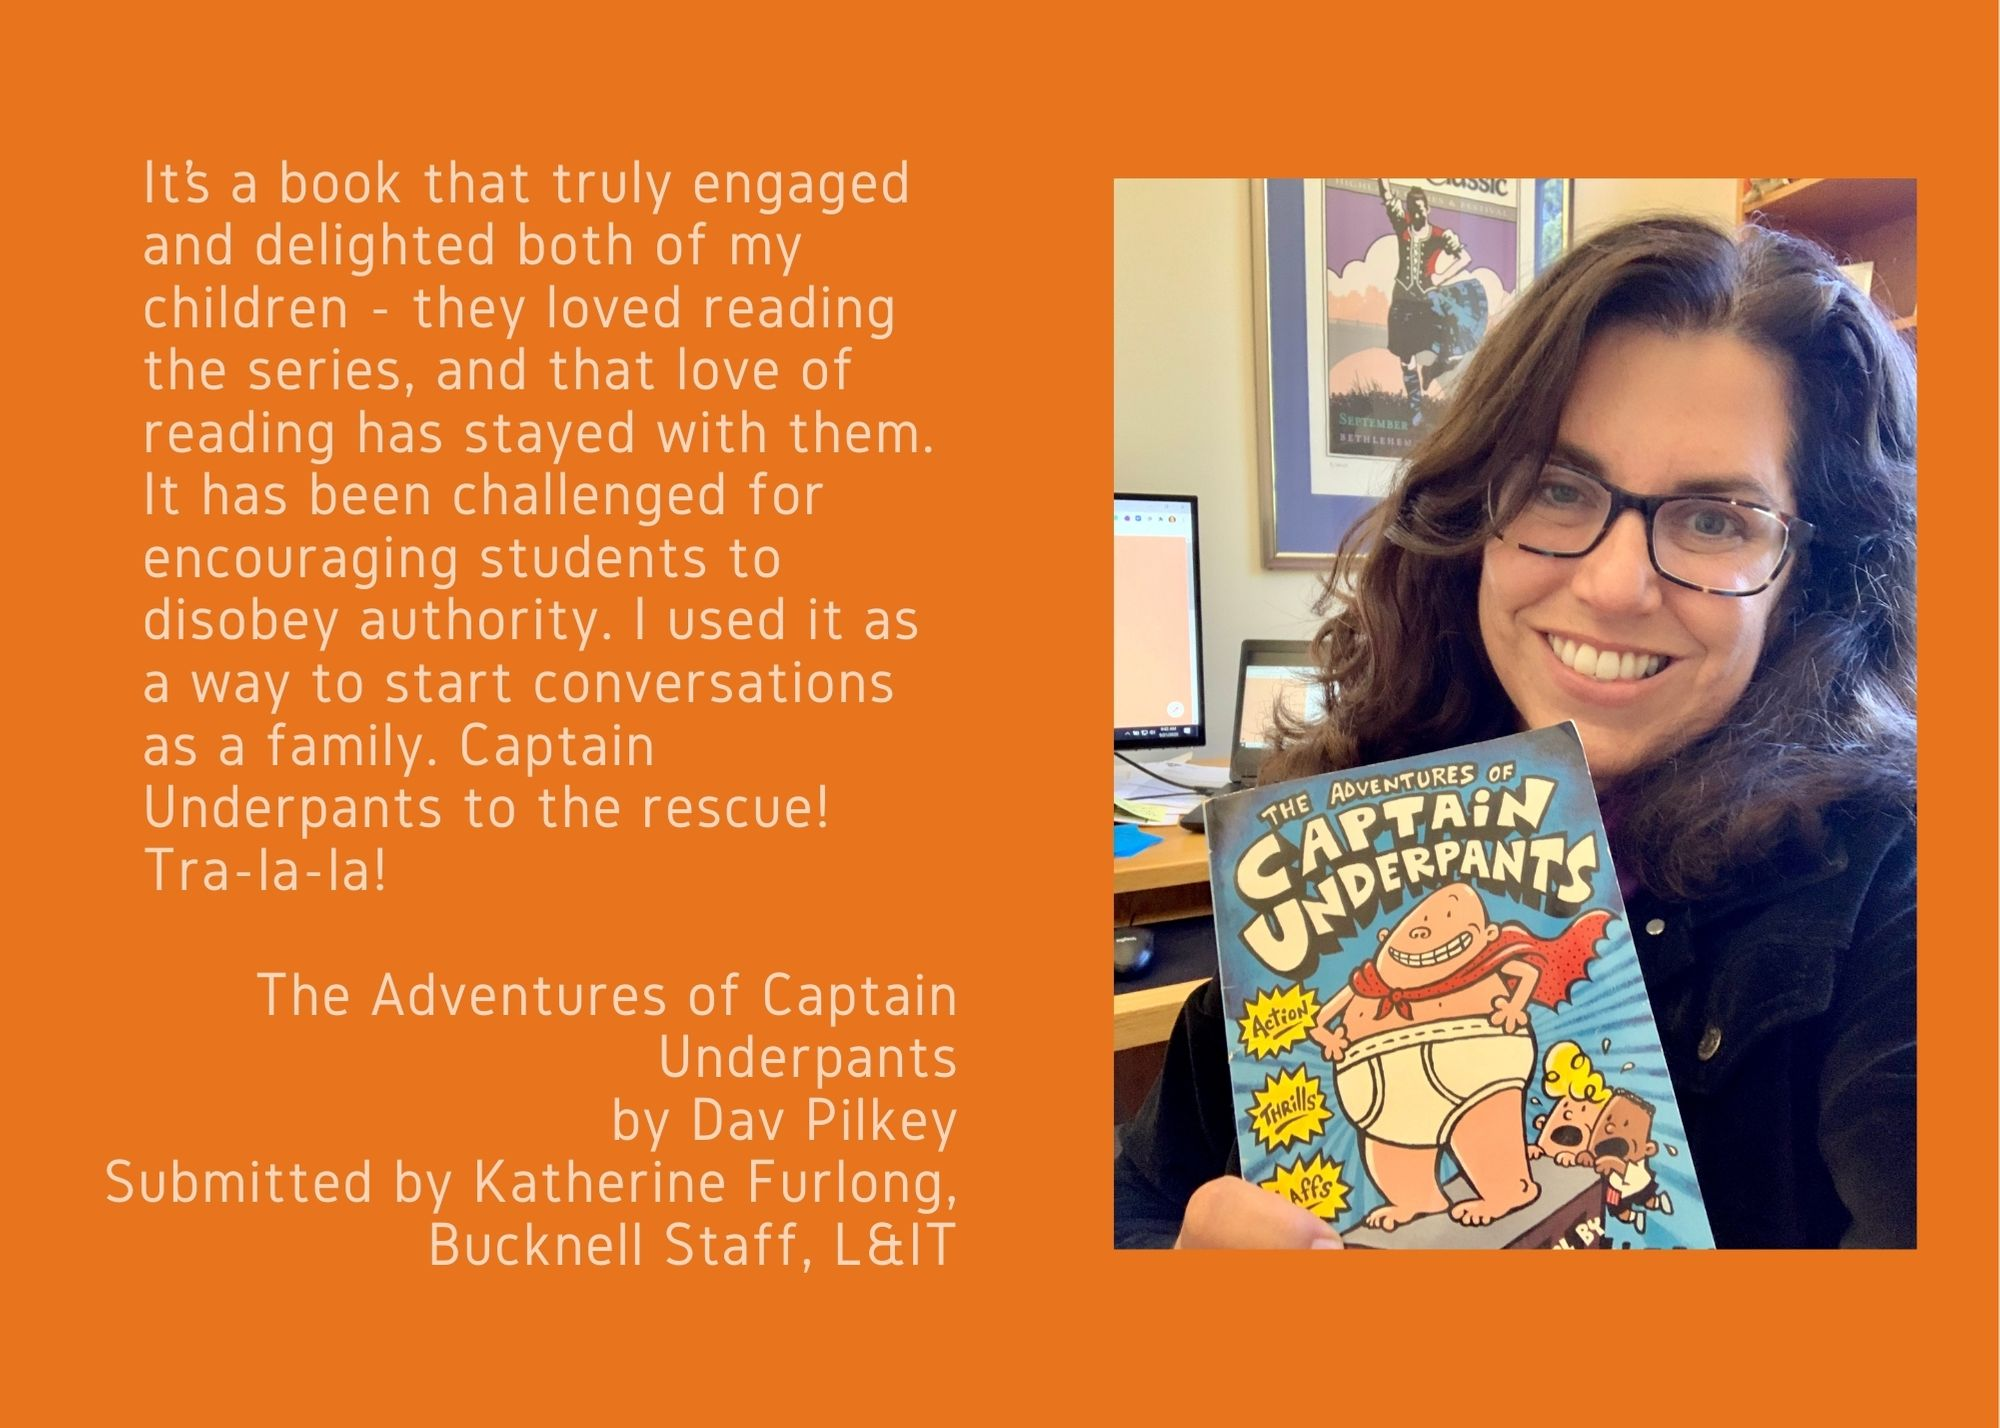 Katherine Furlong and The Adventures of Captain Underpants